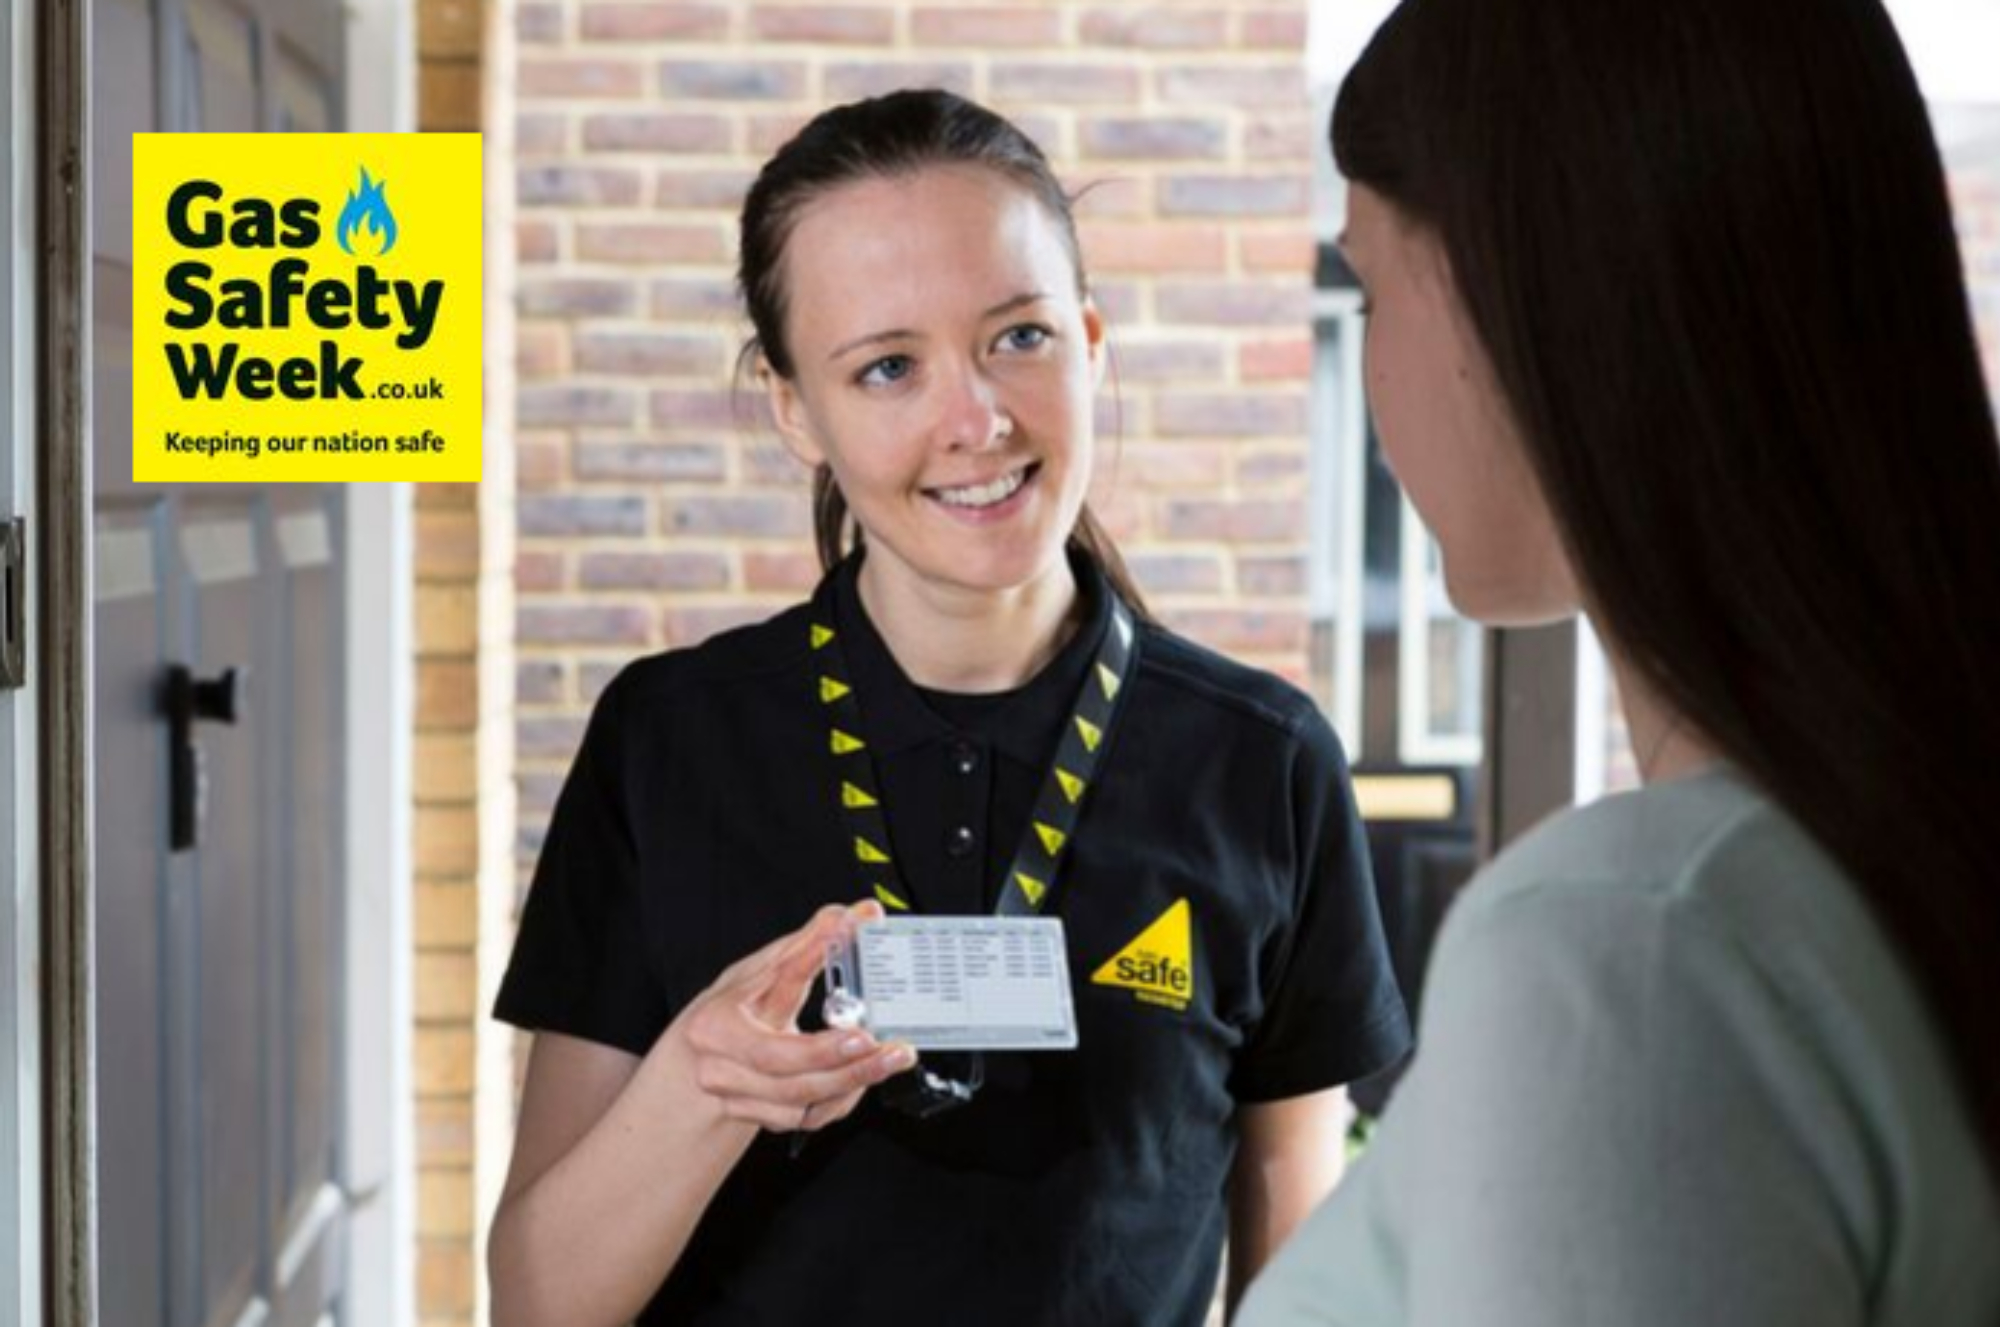 JTL is supporting Gas Safety Week 2019